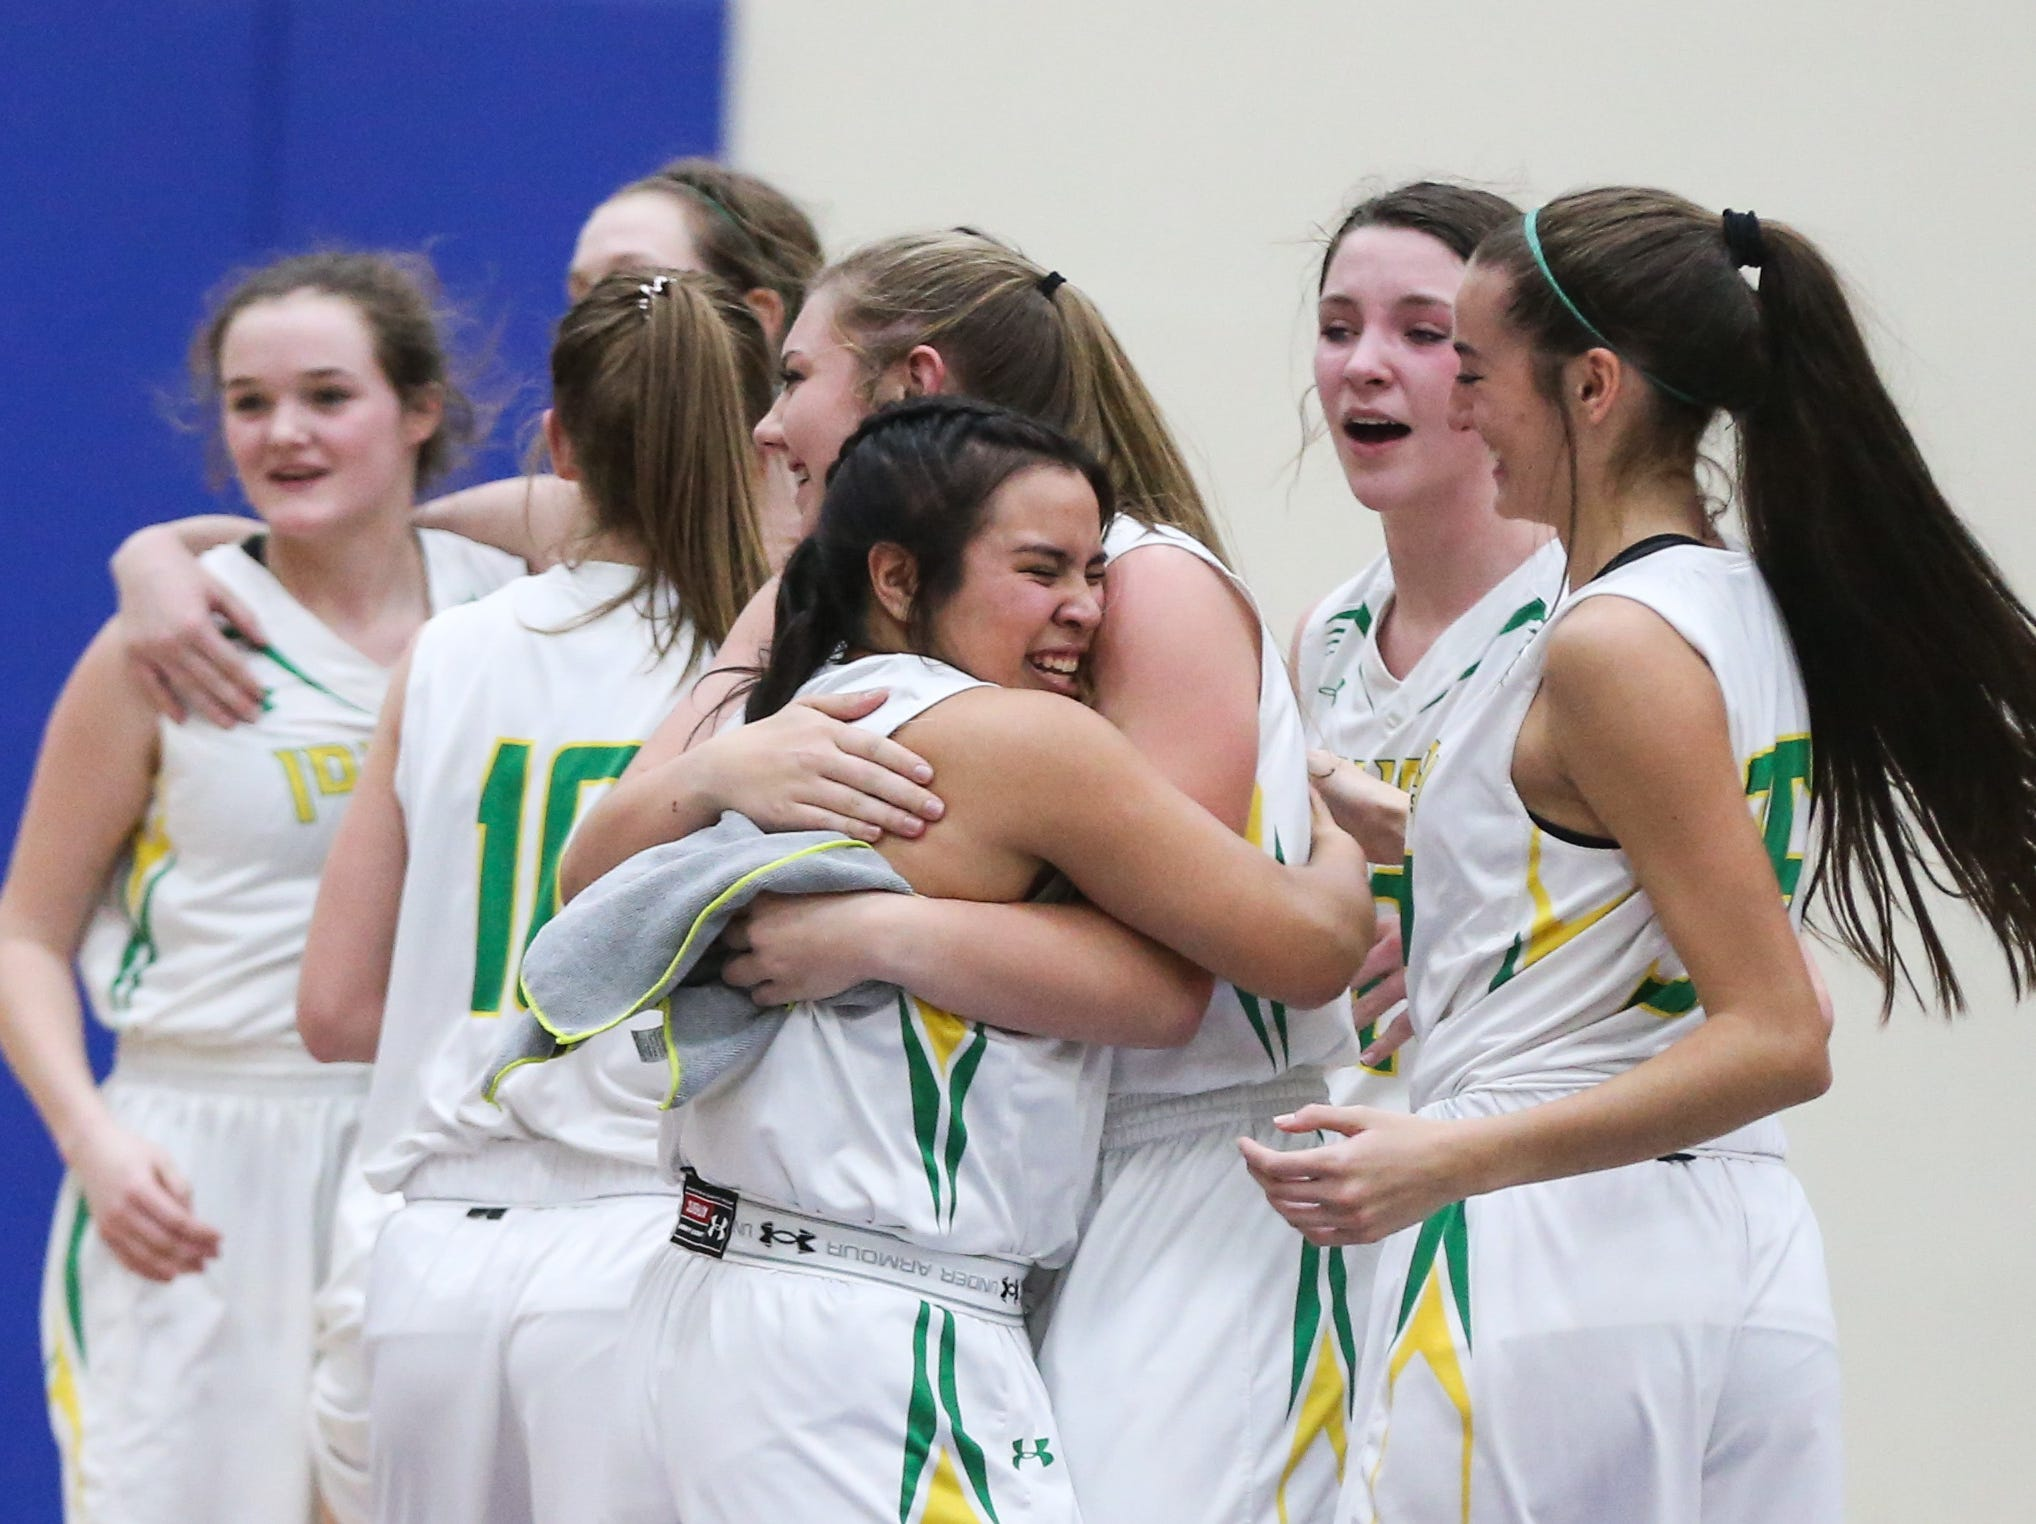 Idalou players celebrate their victory over Jim Ned during the I-3A regional tournament Friday, Feb. 22, 2019, at Wayland Baptist University in Plainview.